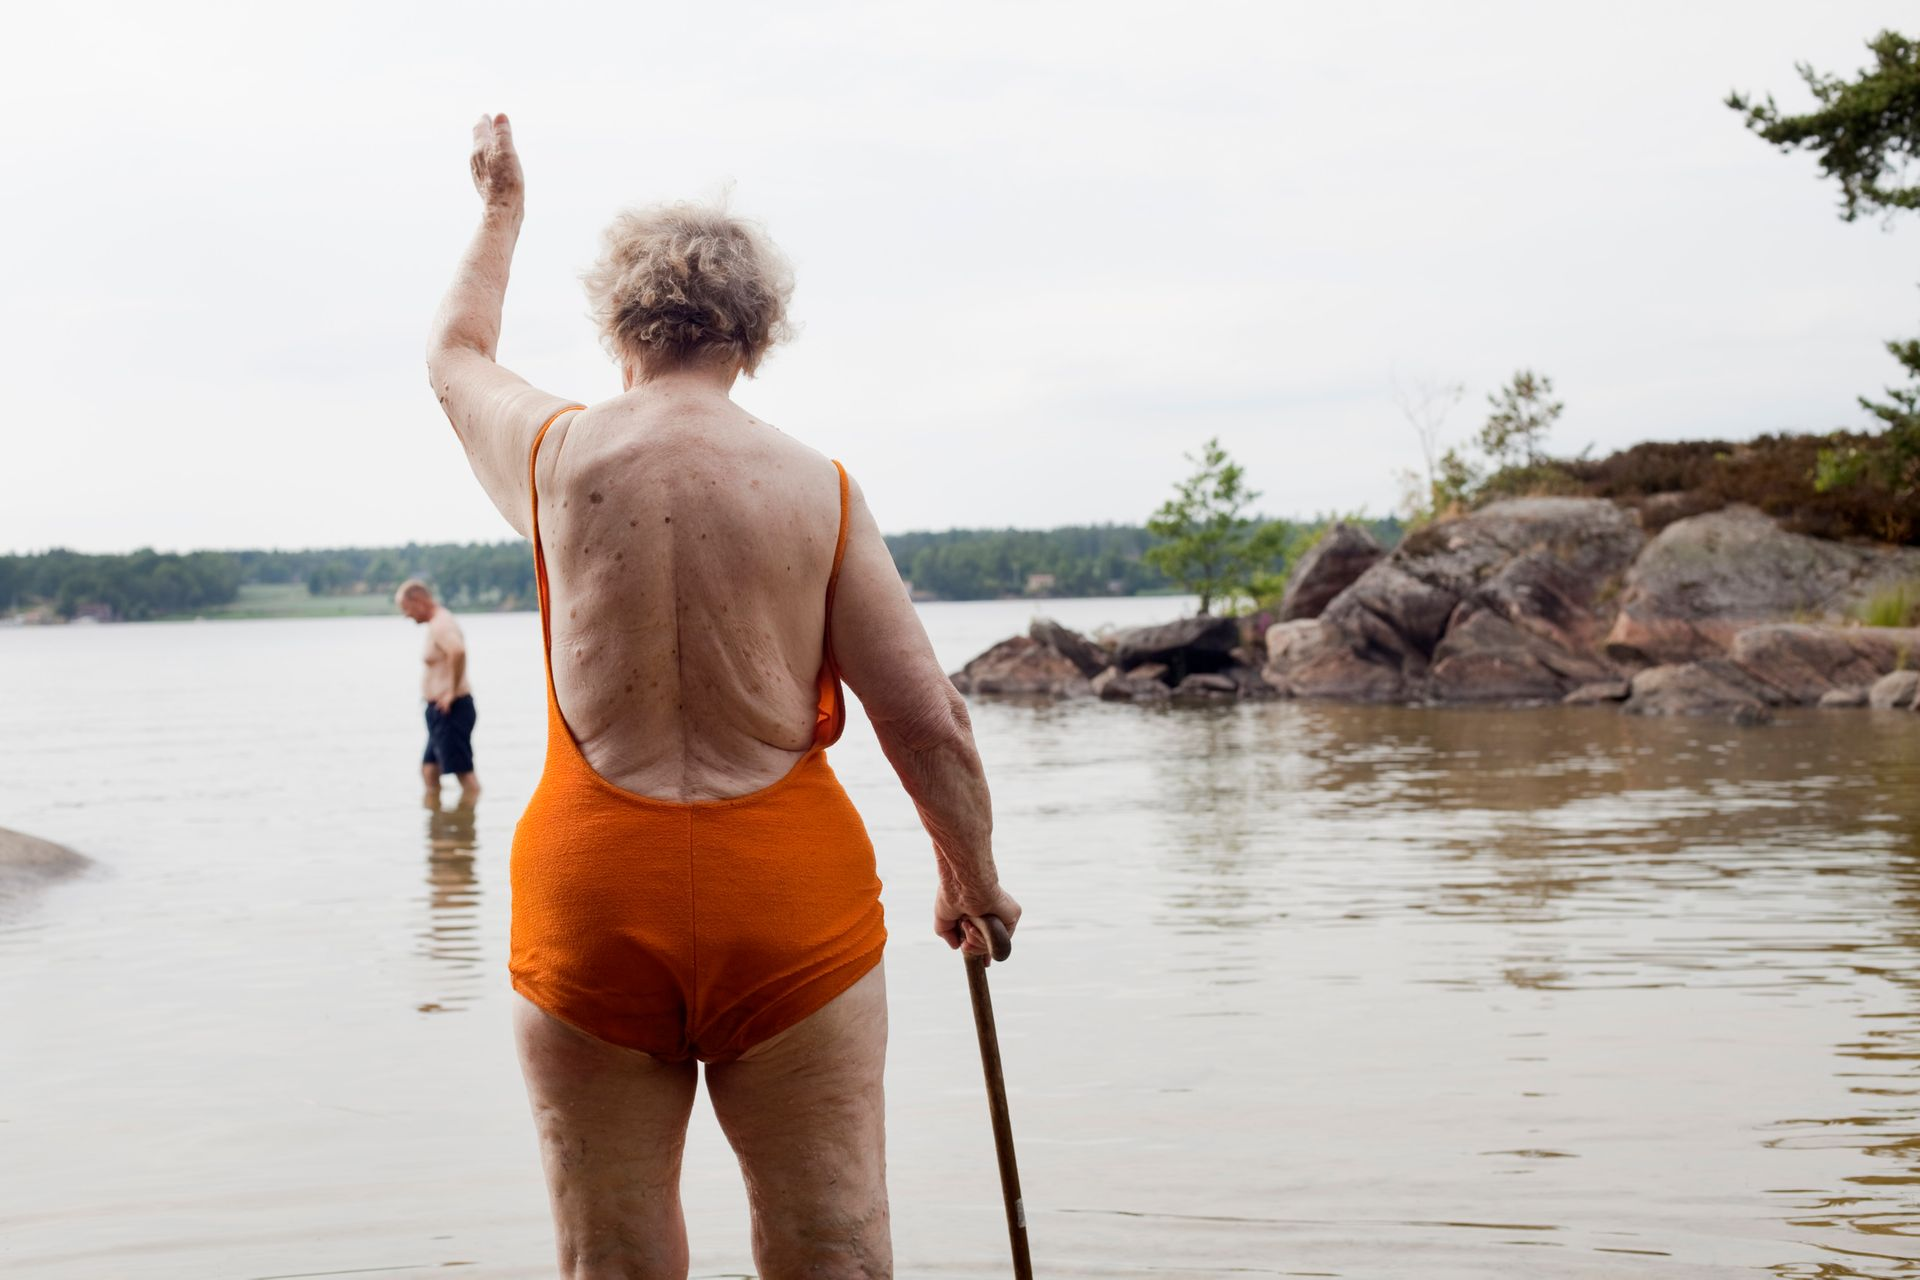 Senior citizens in a lake